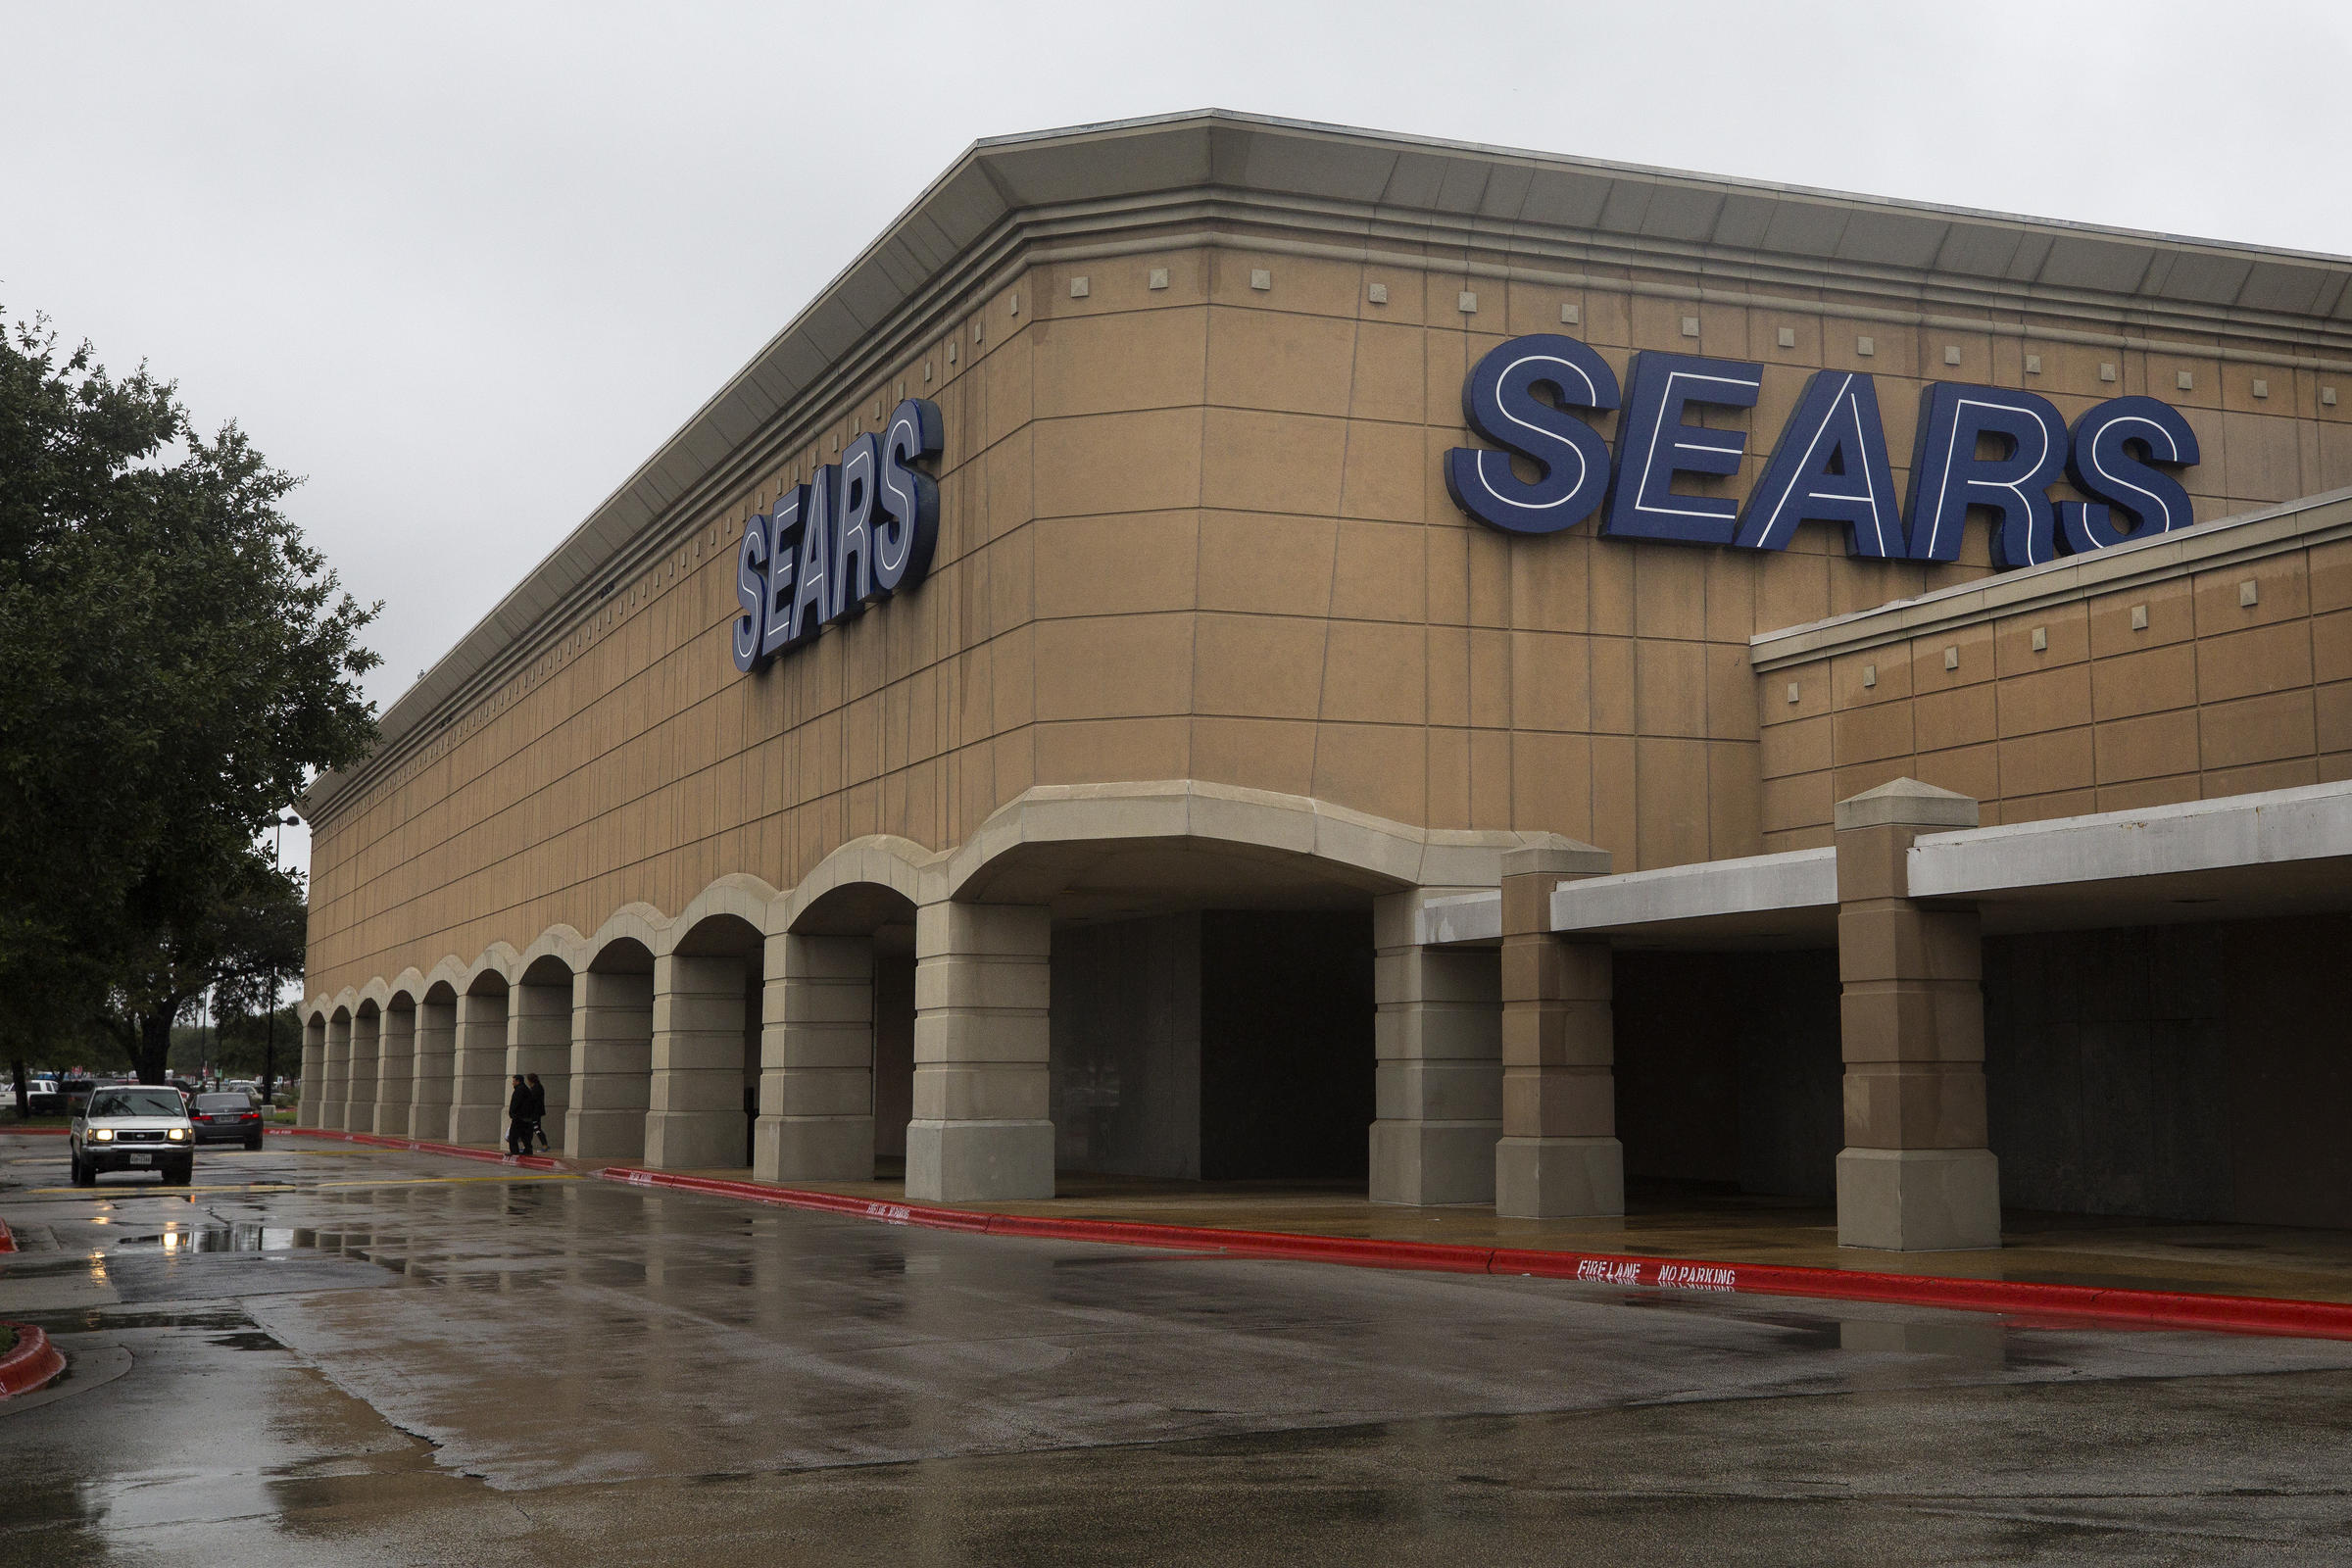 Sears Filed For Chapter 11 Bankruptcy Protection Monday And Announced Plans To Close 142 Of Its S Including The Han Center Barton Creek Square